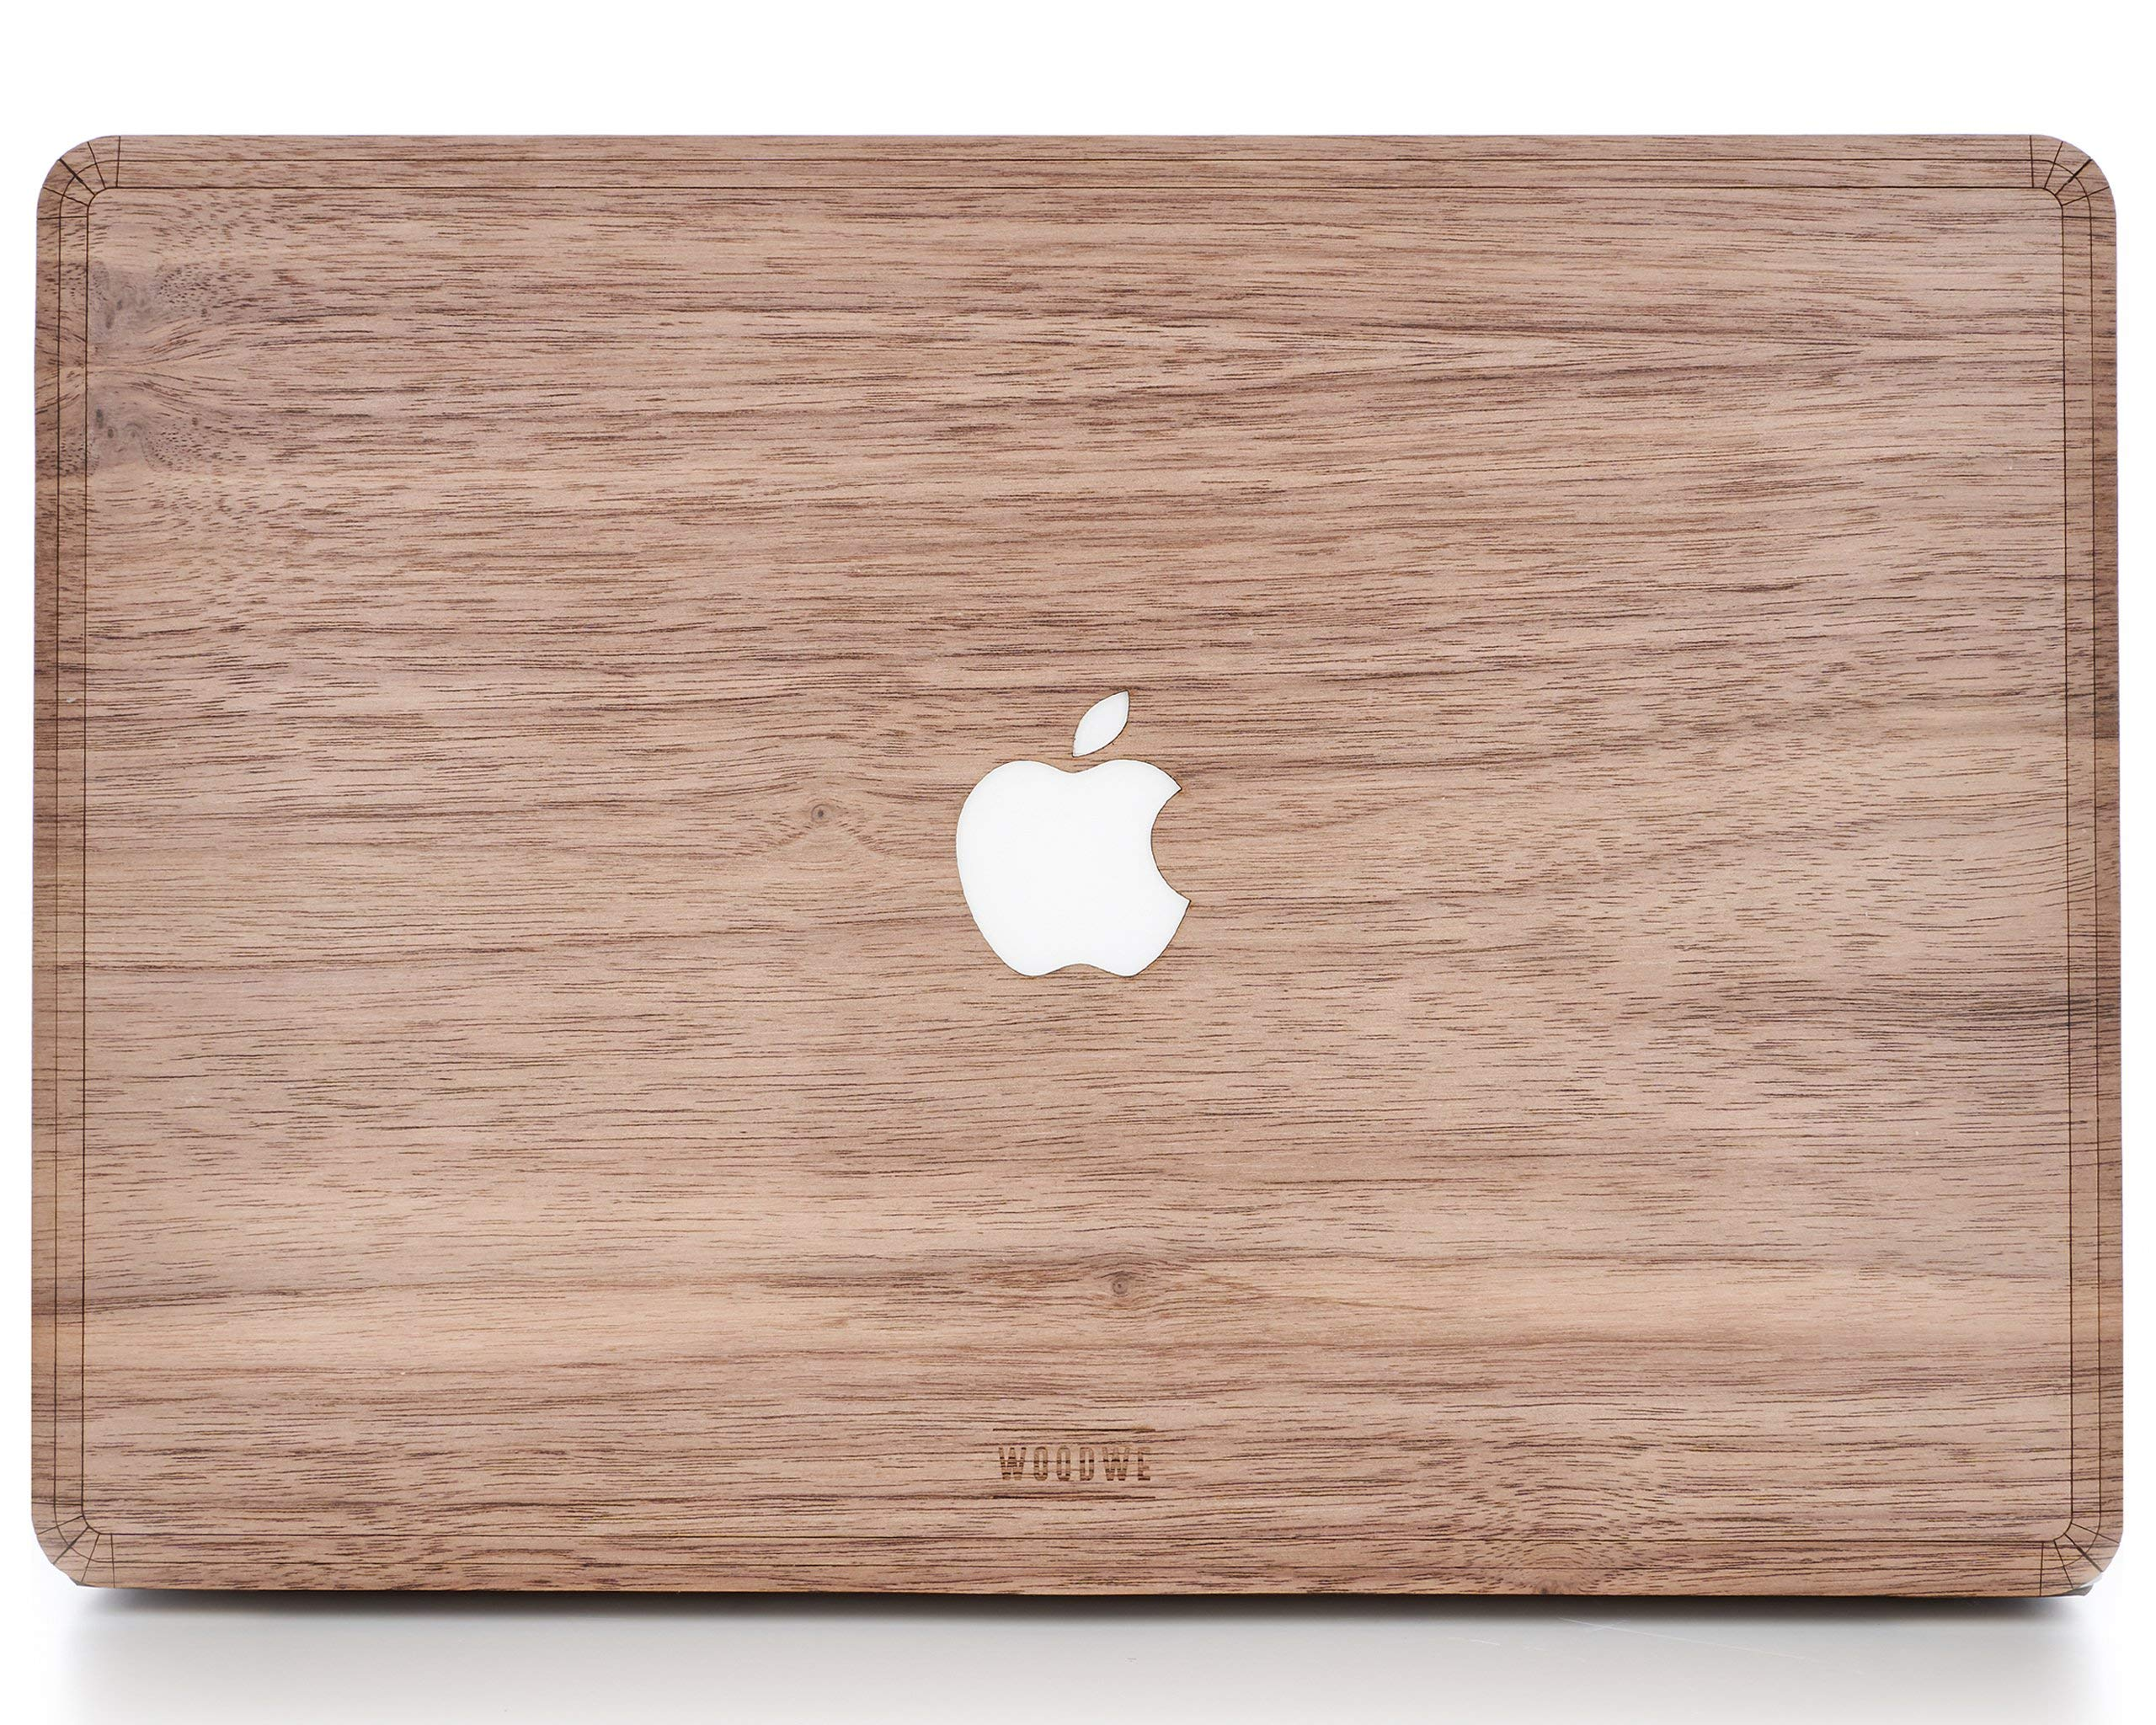 WOODWE Real Wood MacBook Skin for Mac Air 13 inch Non Retina Display | Model: A1237/A1304/A1369/A1466; Early 2008 - Mid 2017 | Natural Walnut | TOP&Bottom